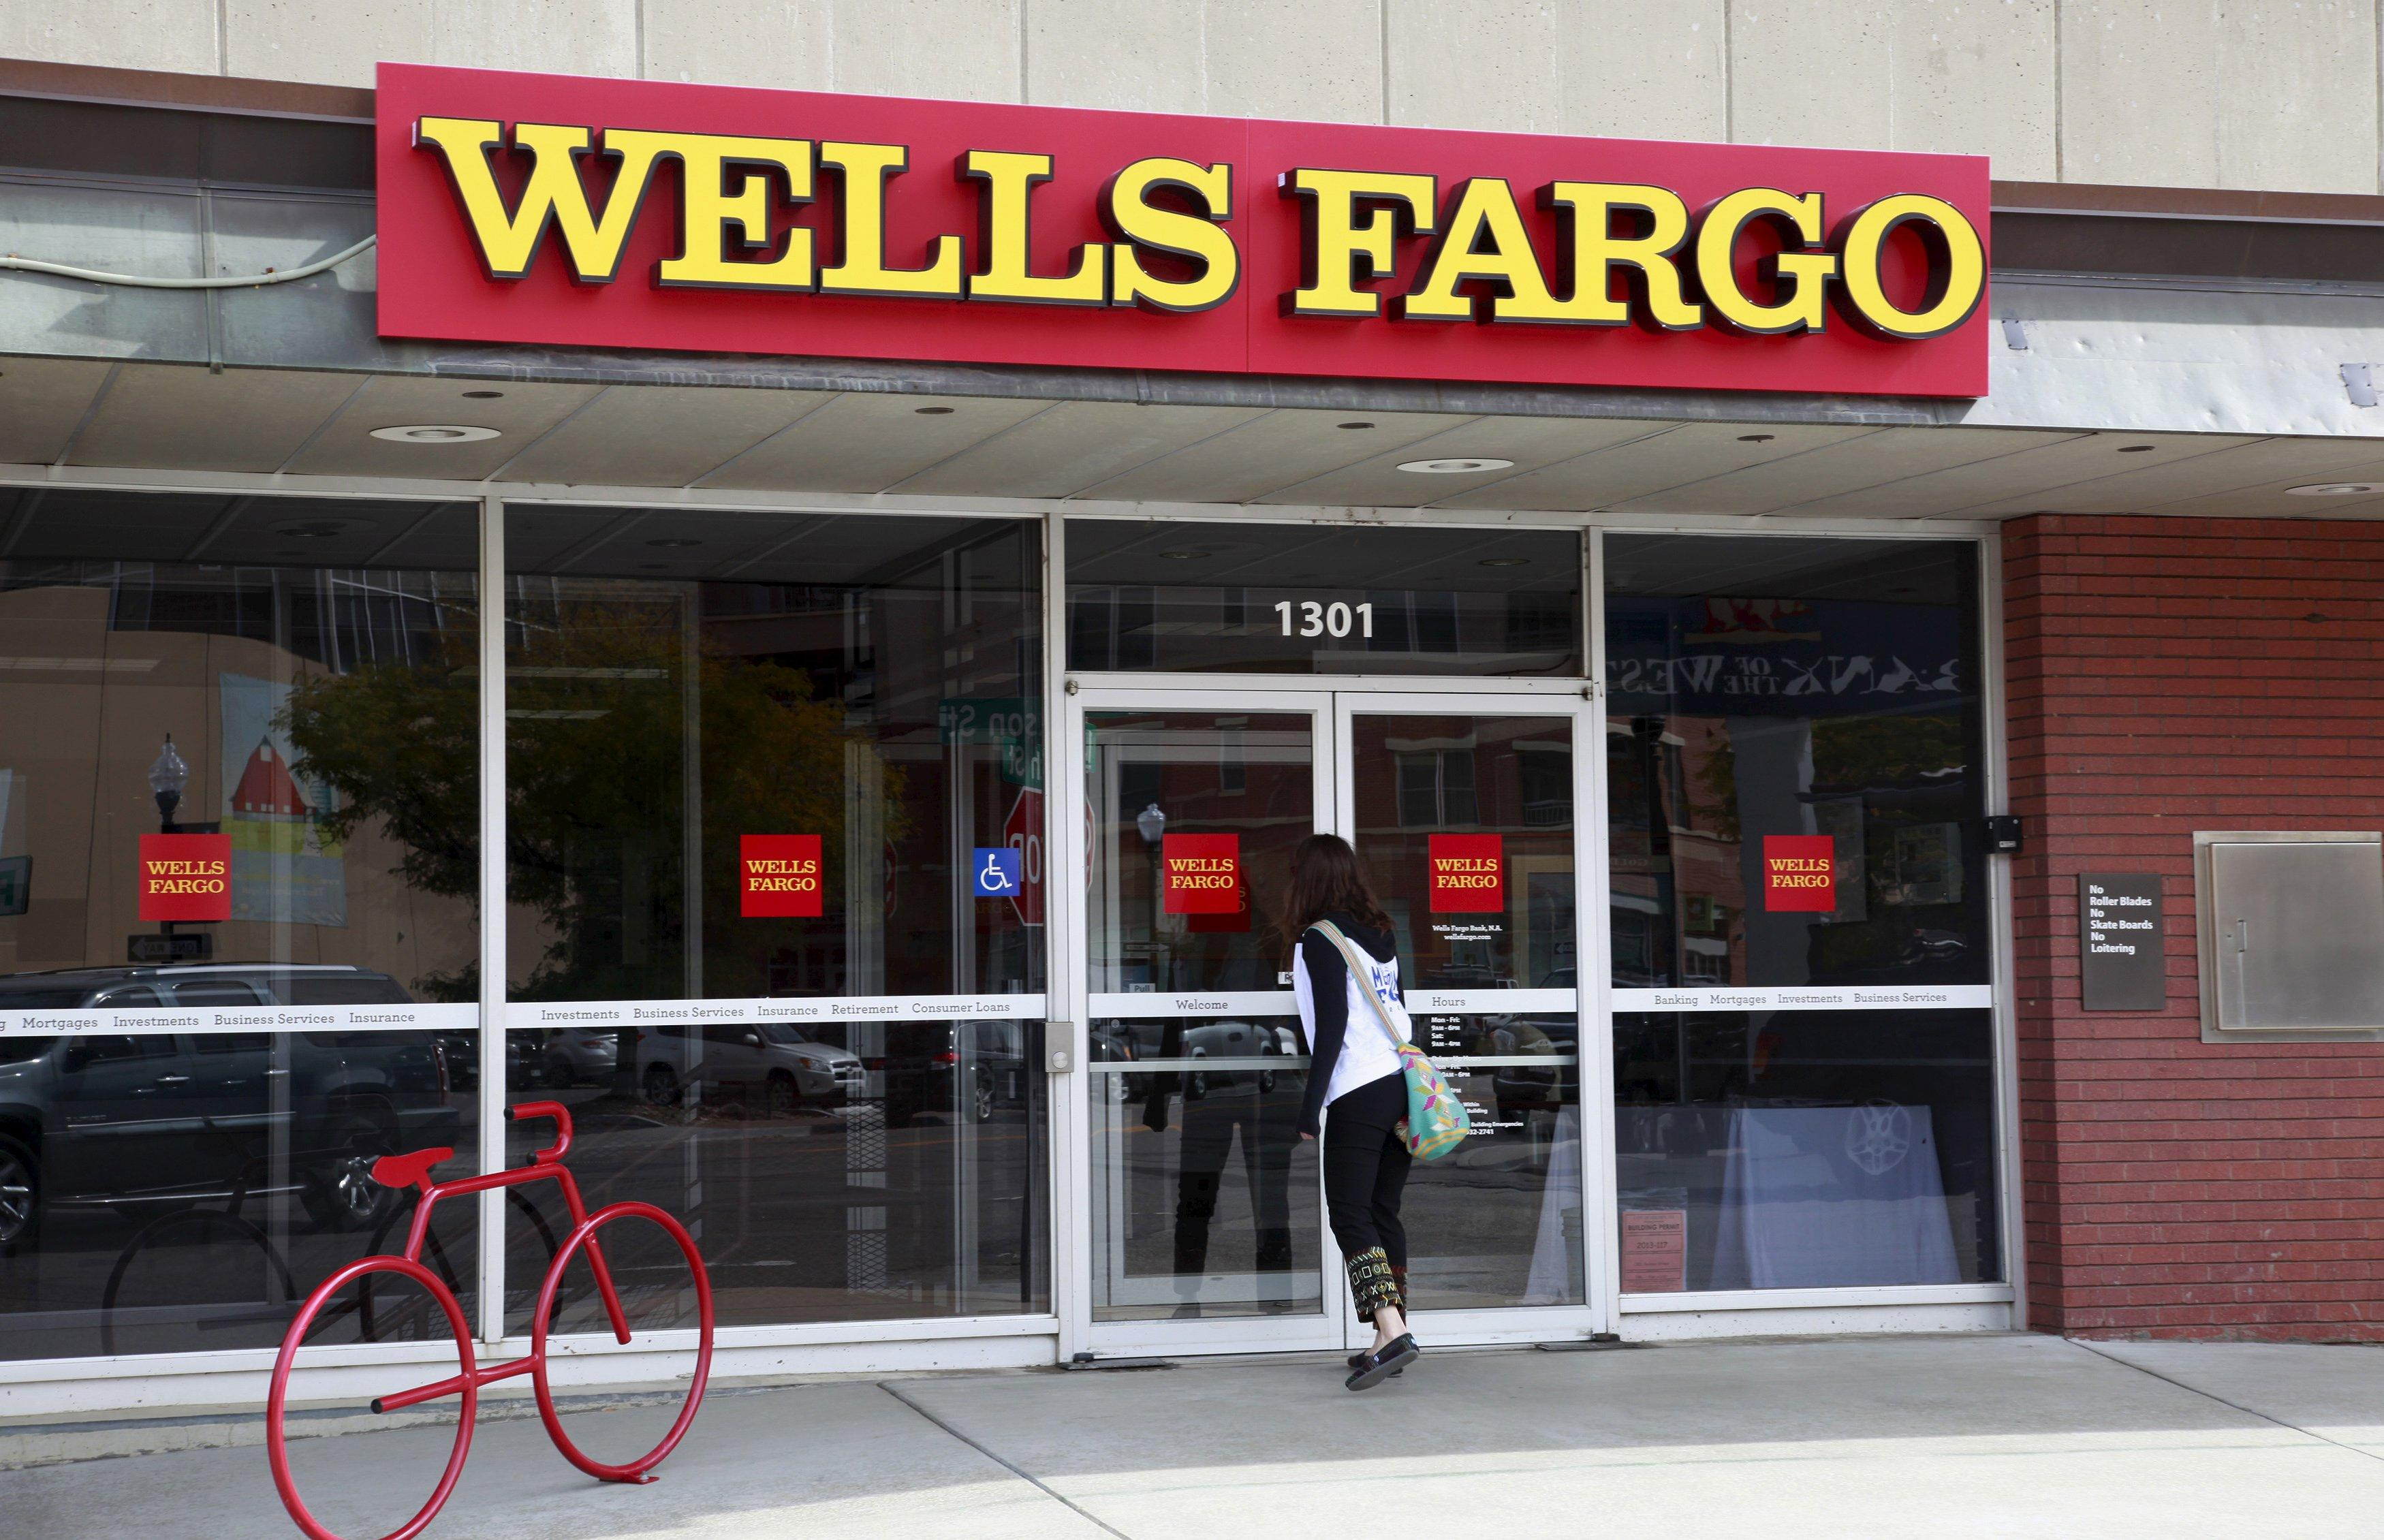 two professors predicted the wells fargo scandal in 2014